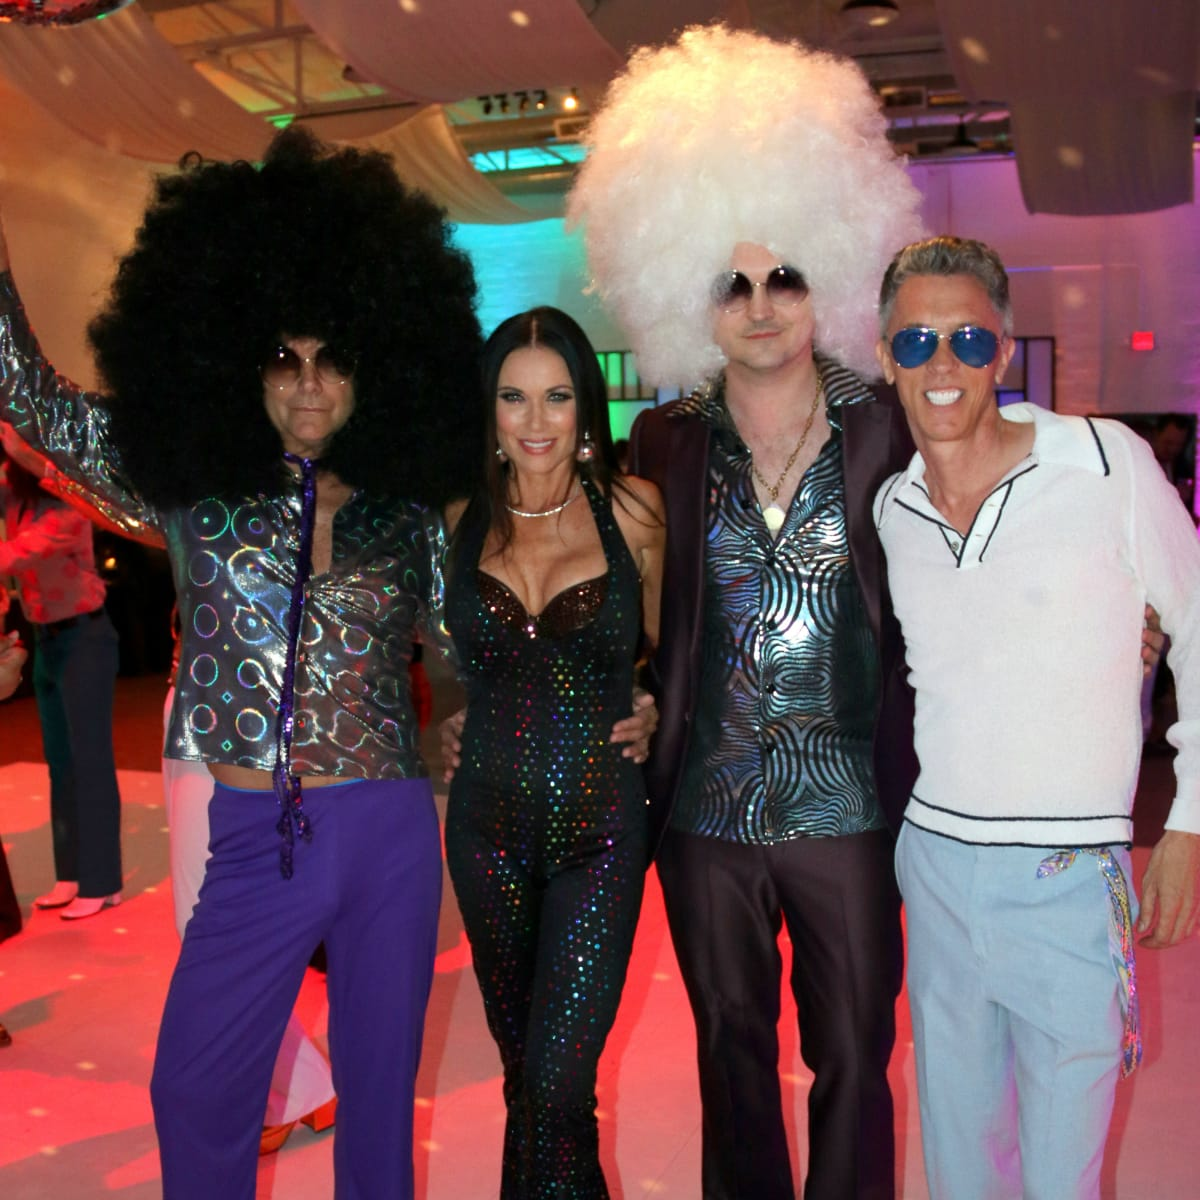 Steve Kemble, LeeAnne Locken, Chad Collum, Tommy Walker